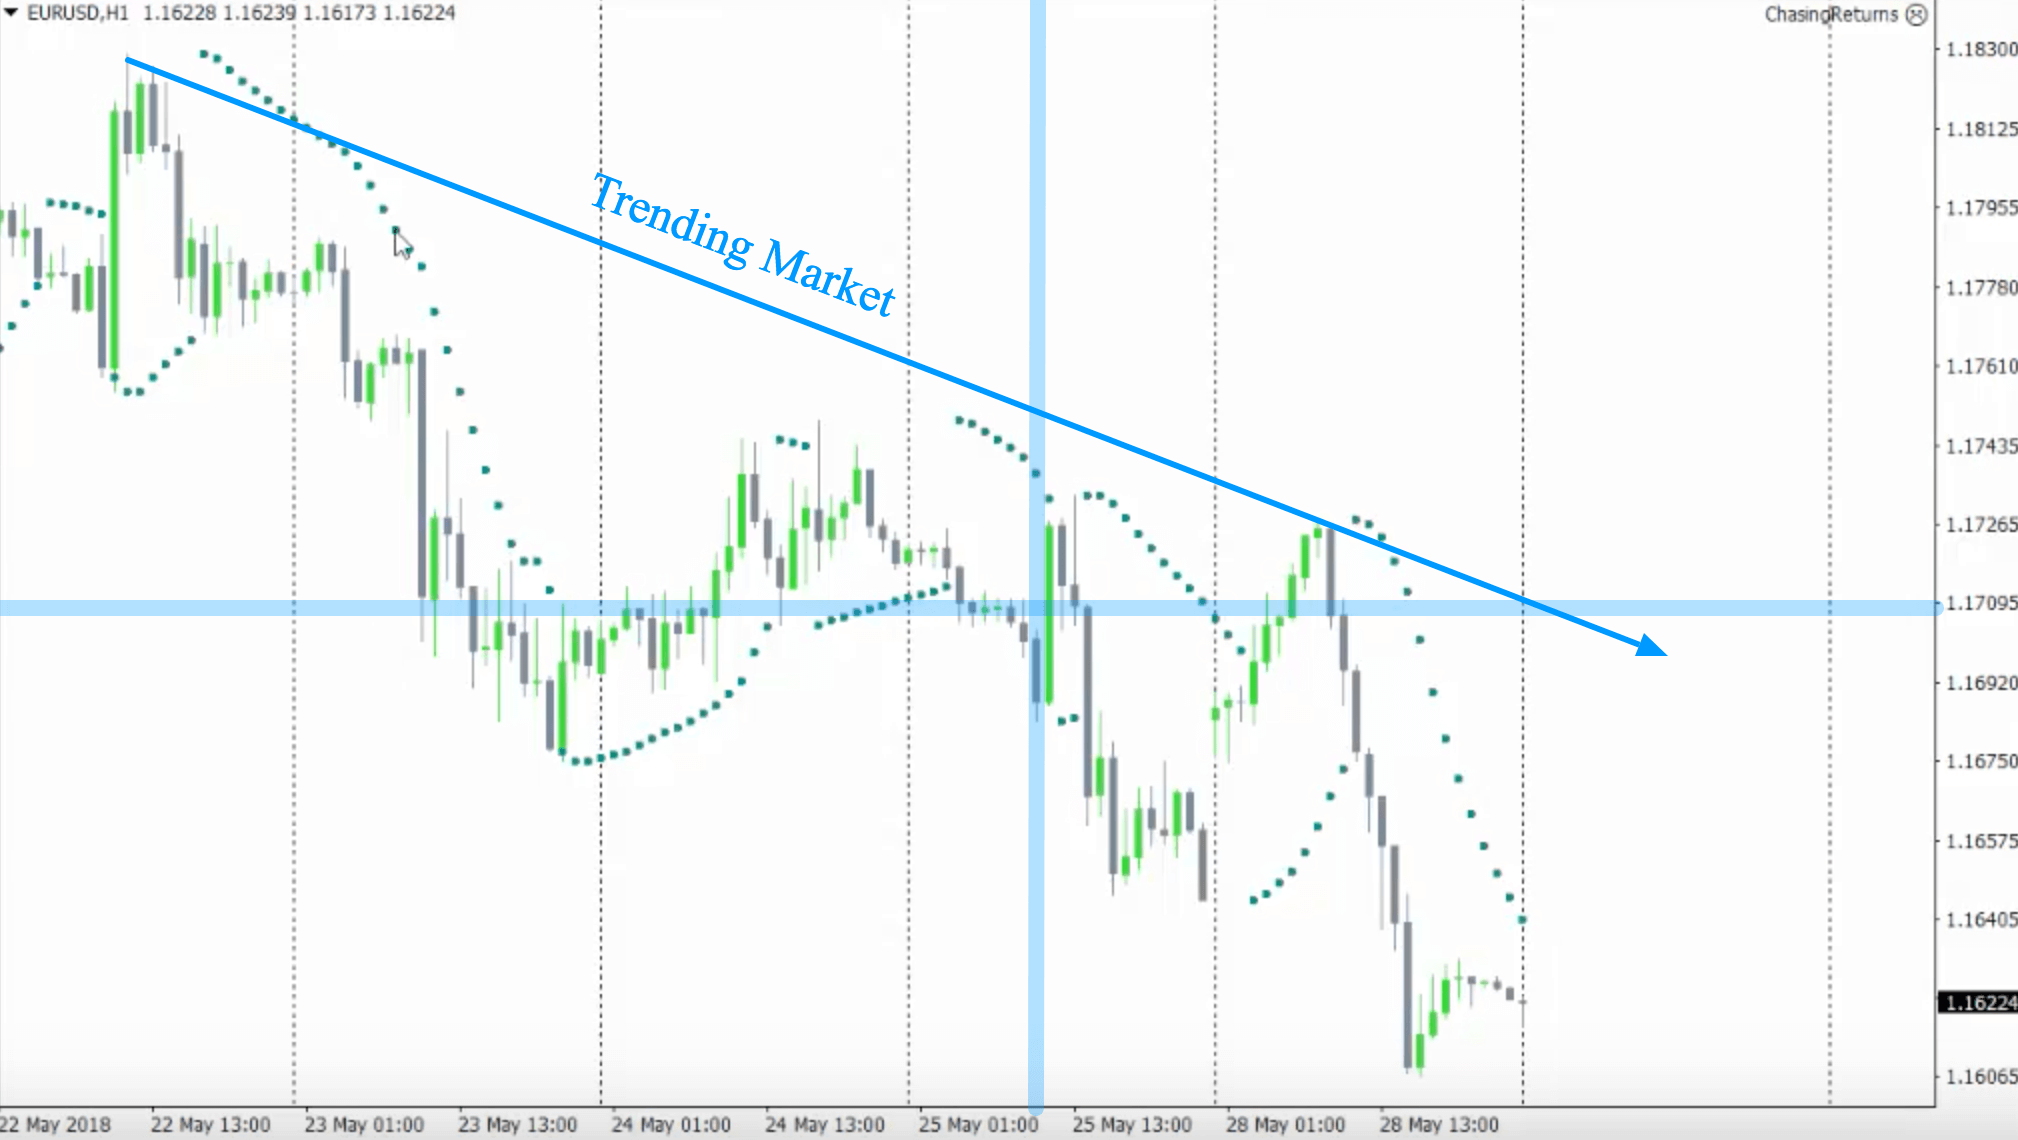 Downtrend (1)